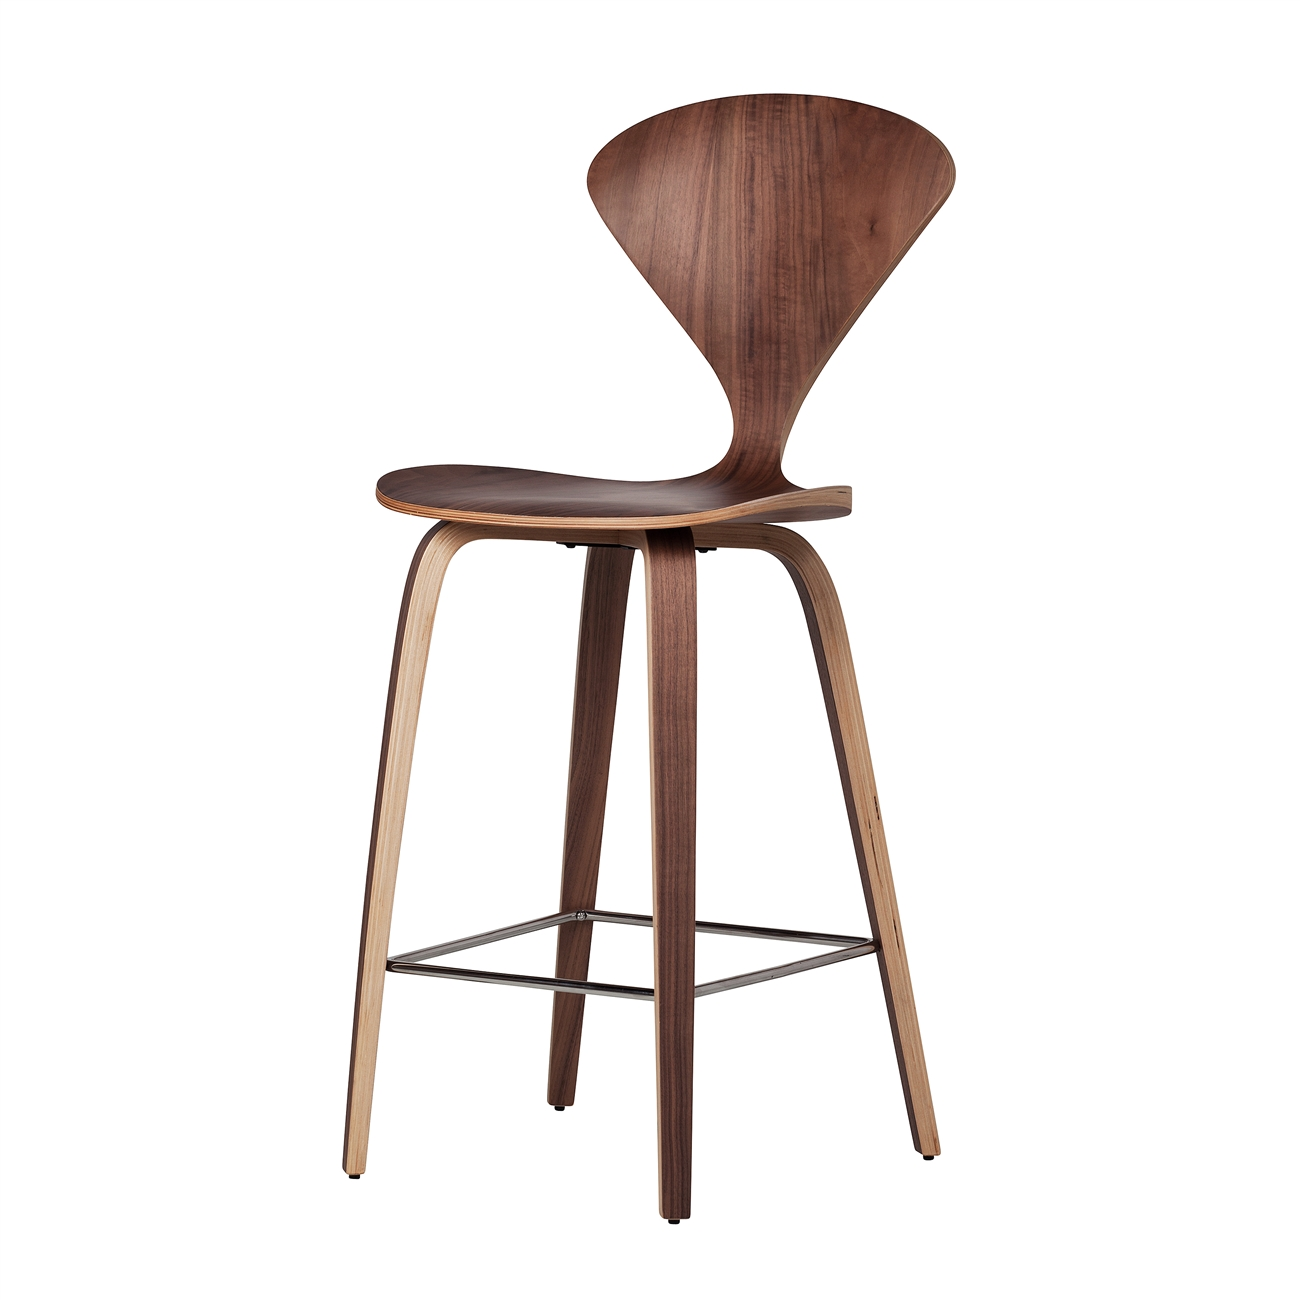 Satine Molded Plywood Bar Stool The Khazana Home Austin